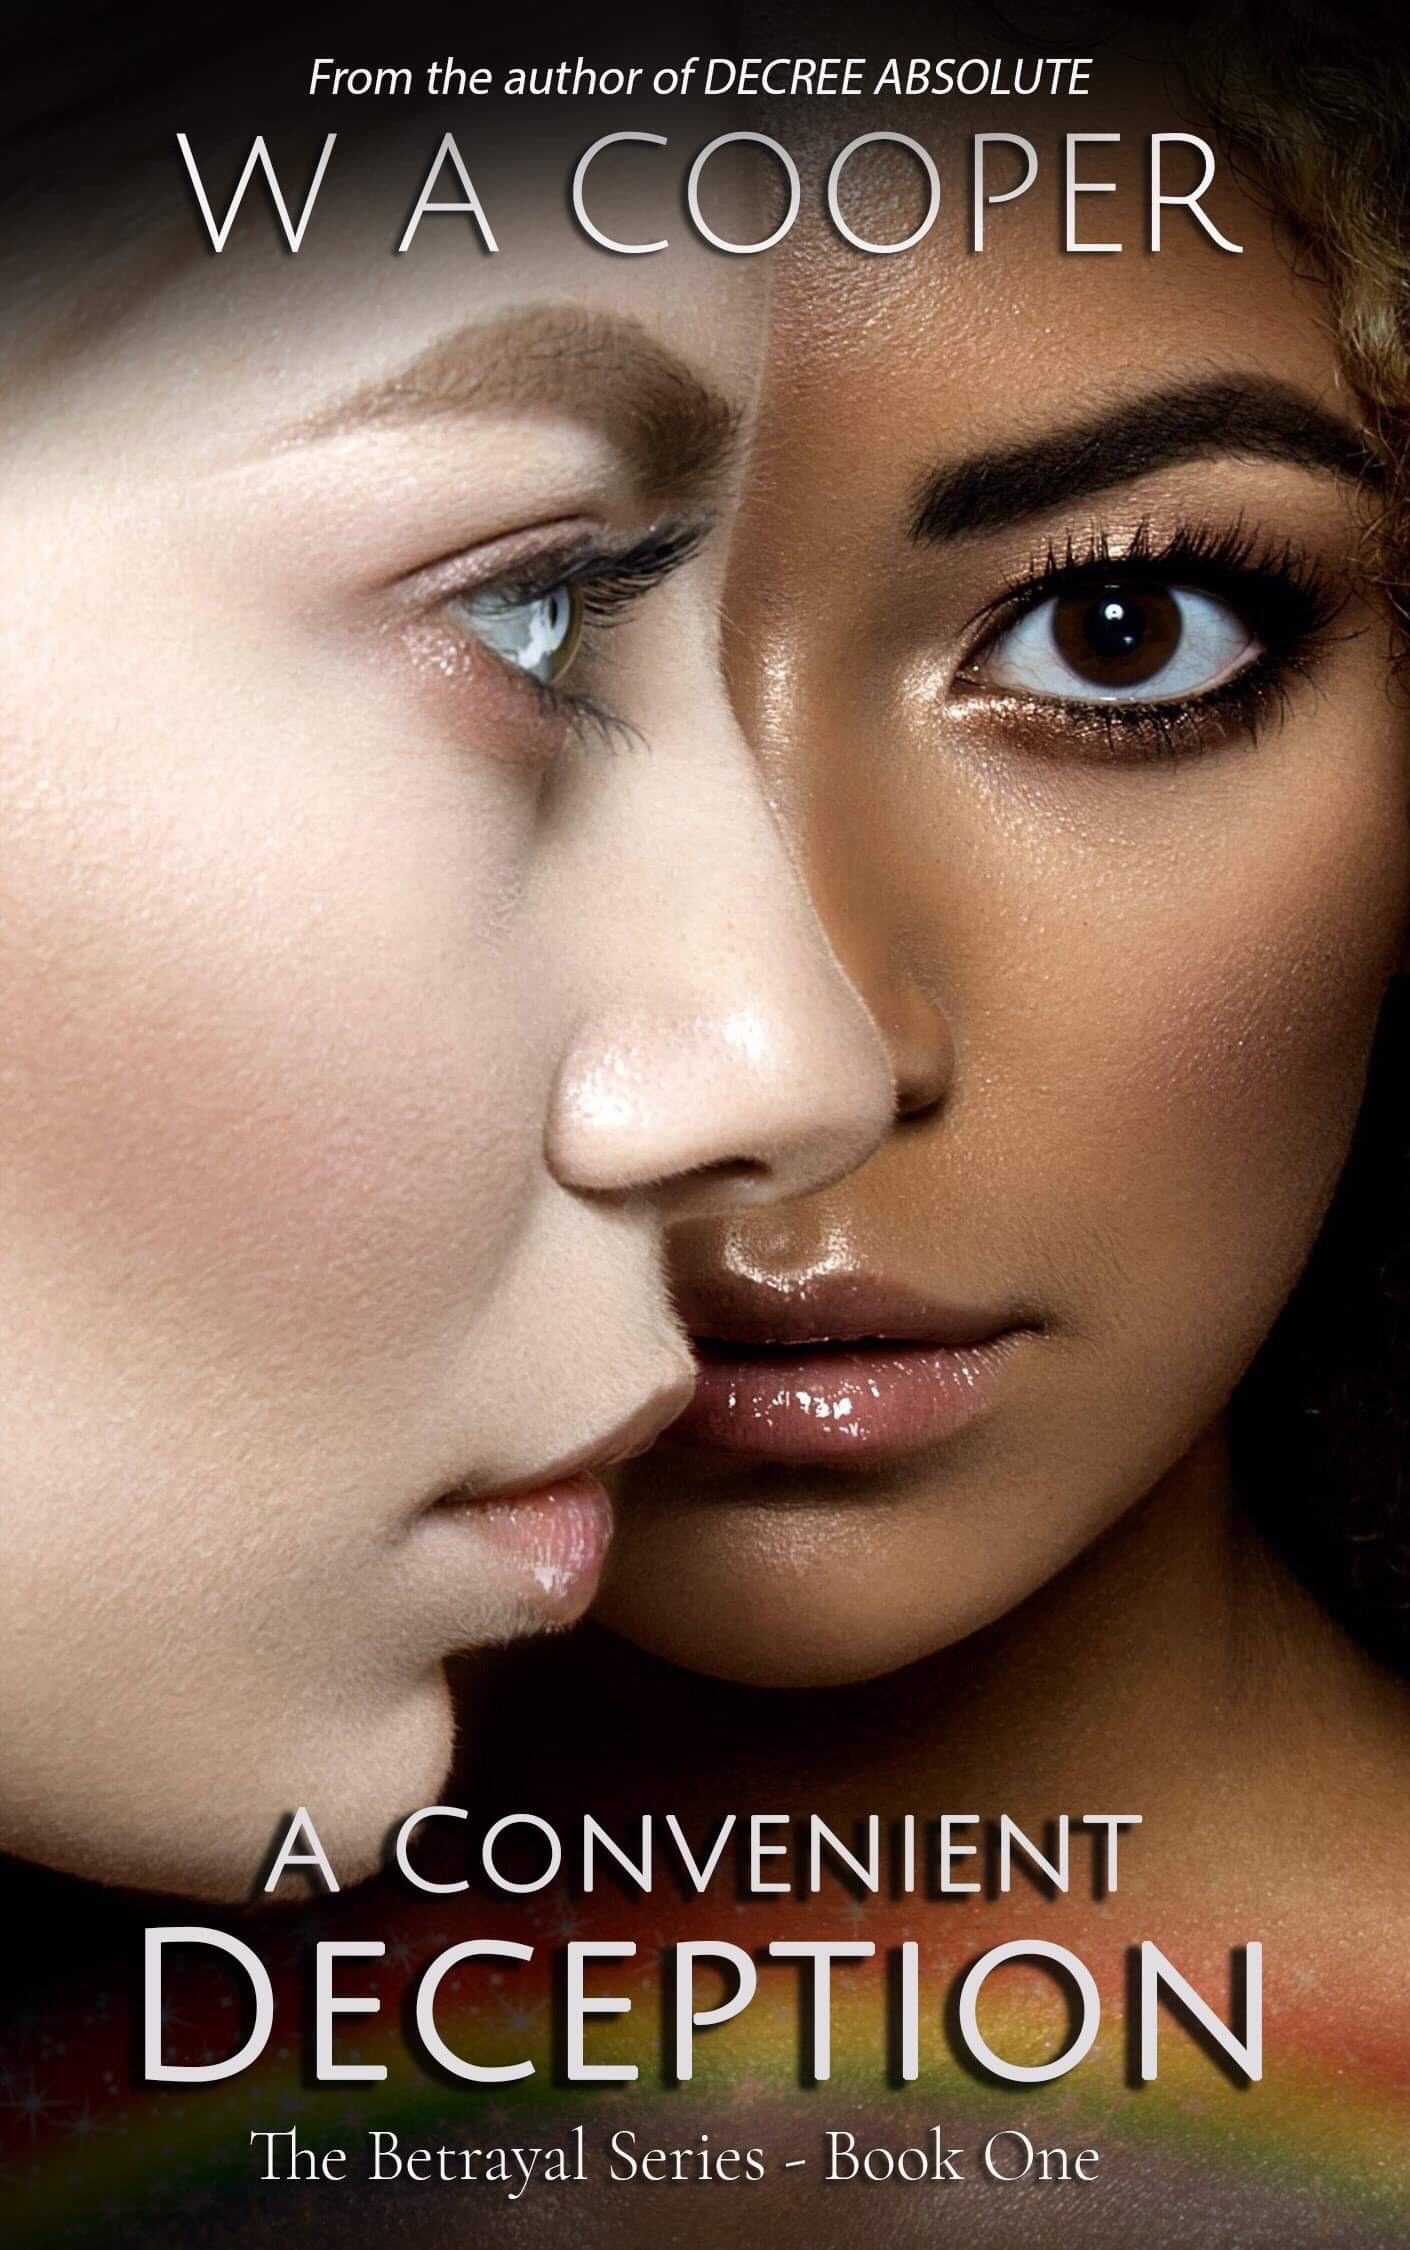 'A Convenient Deception: The Betrayal Series – Book One' by W.A. Cooper